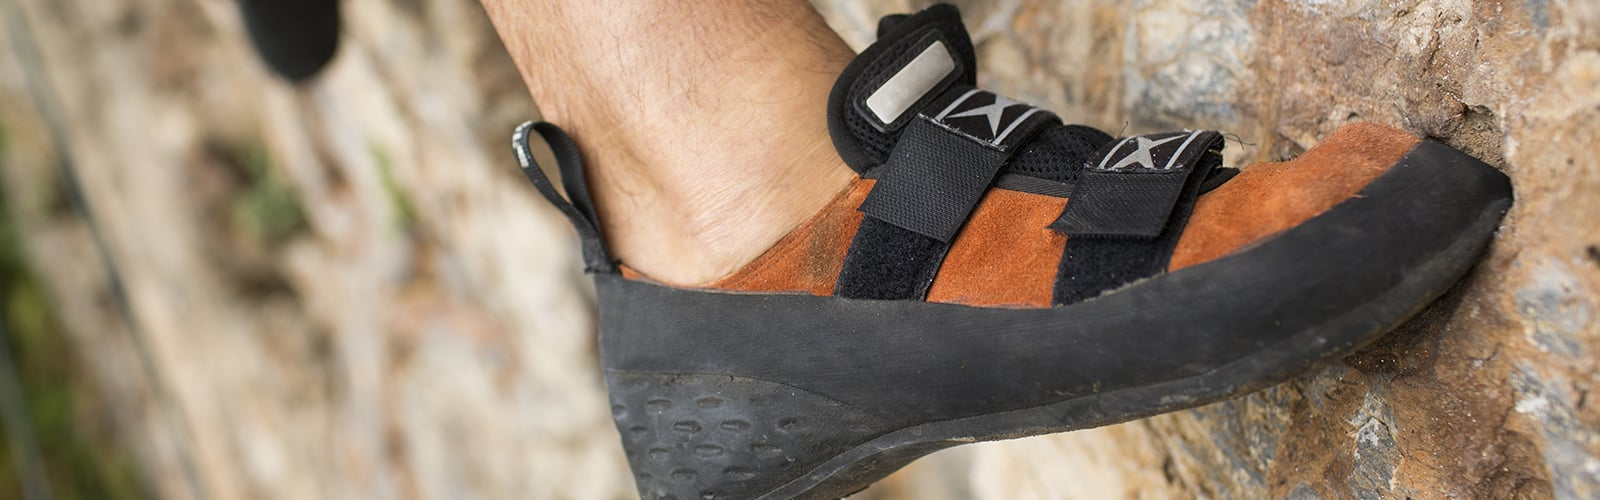 How to Choose Climbing Shoes: Sierra Trading Post